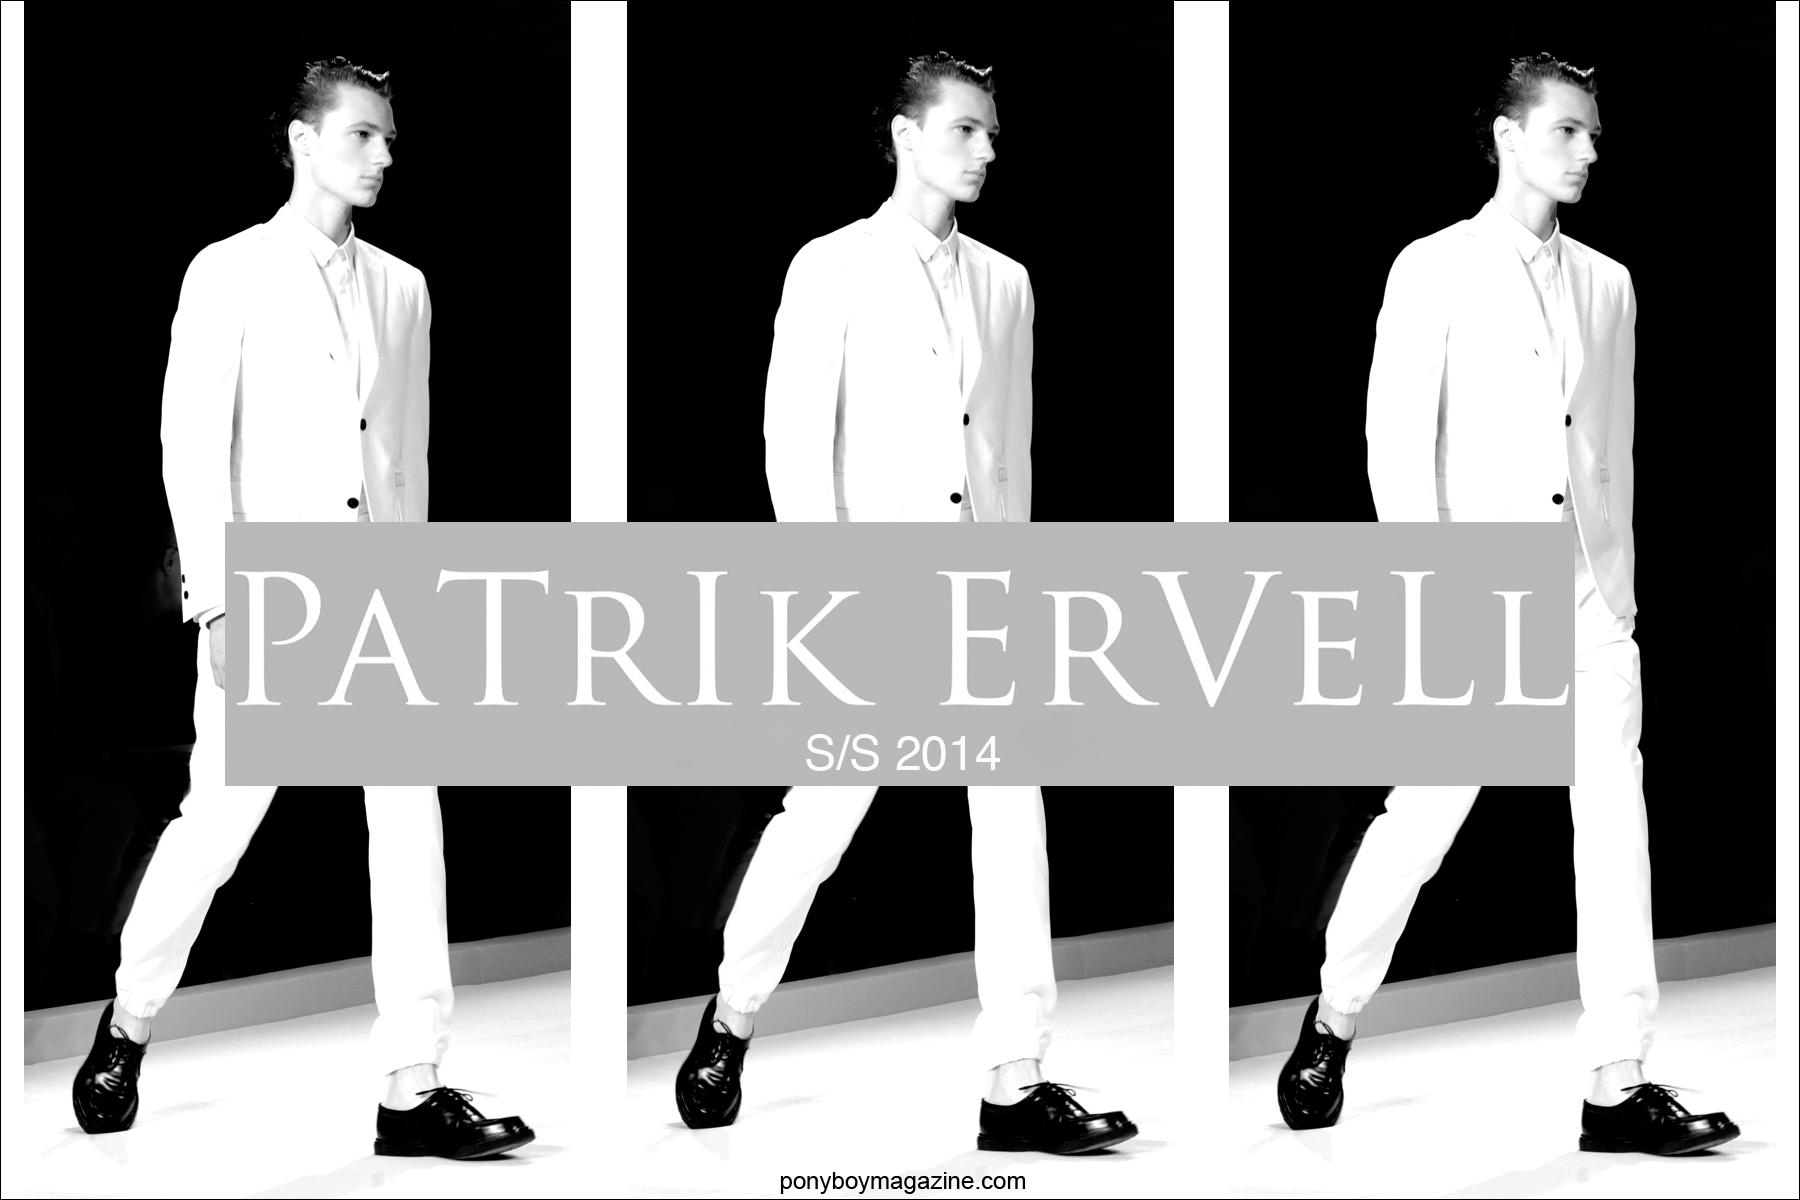 Patrick Ervell Spring Summer 2014 opener for Ponyboy Magazine, photographed by Alexander Thompson.